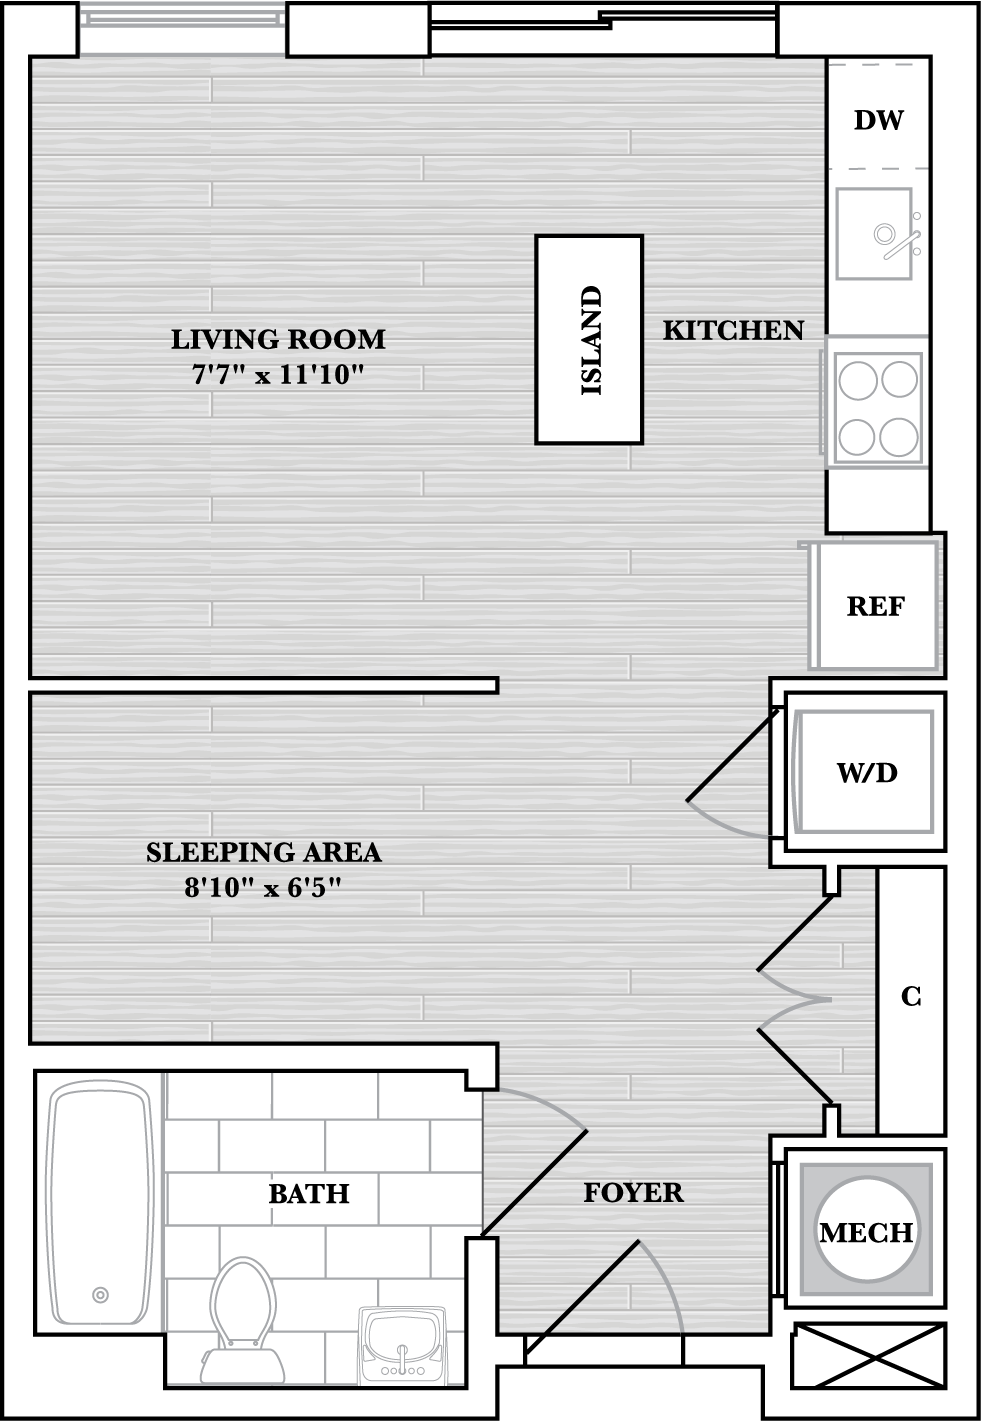 floorplan image of N226